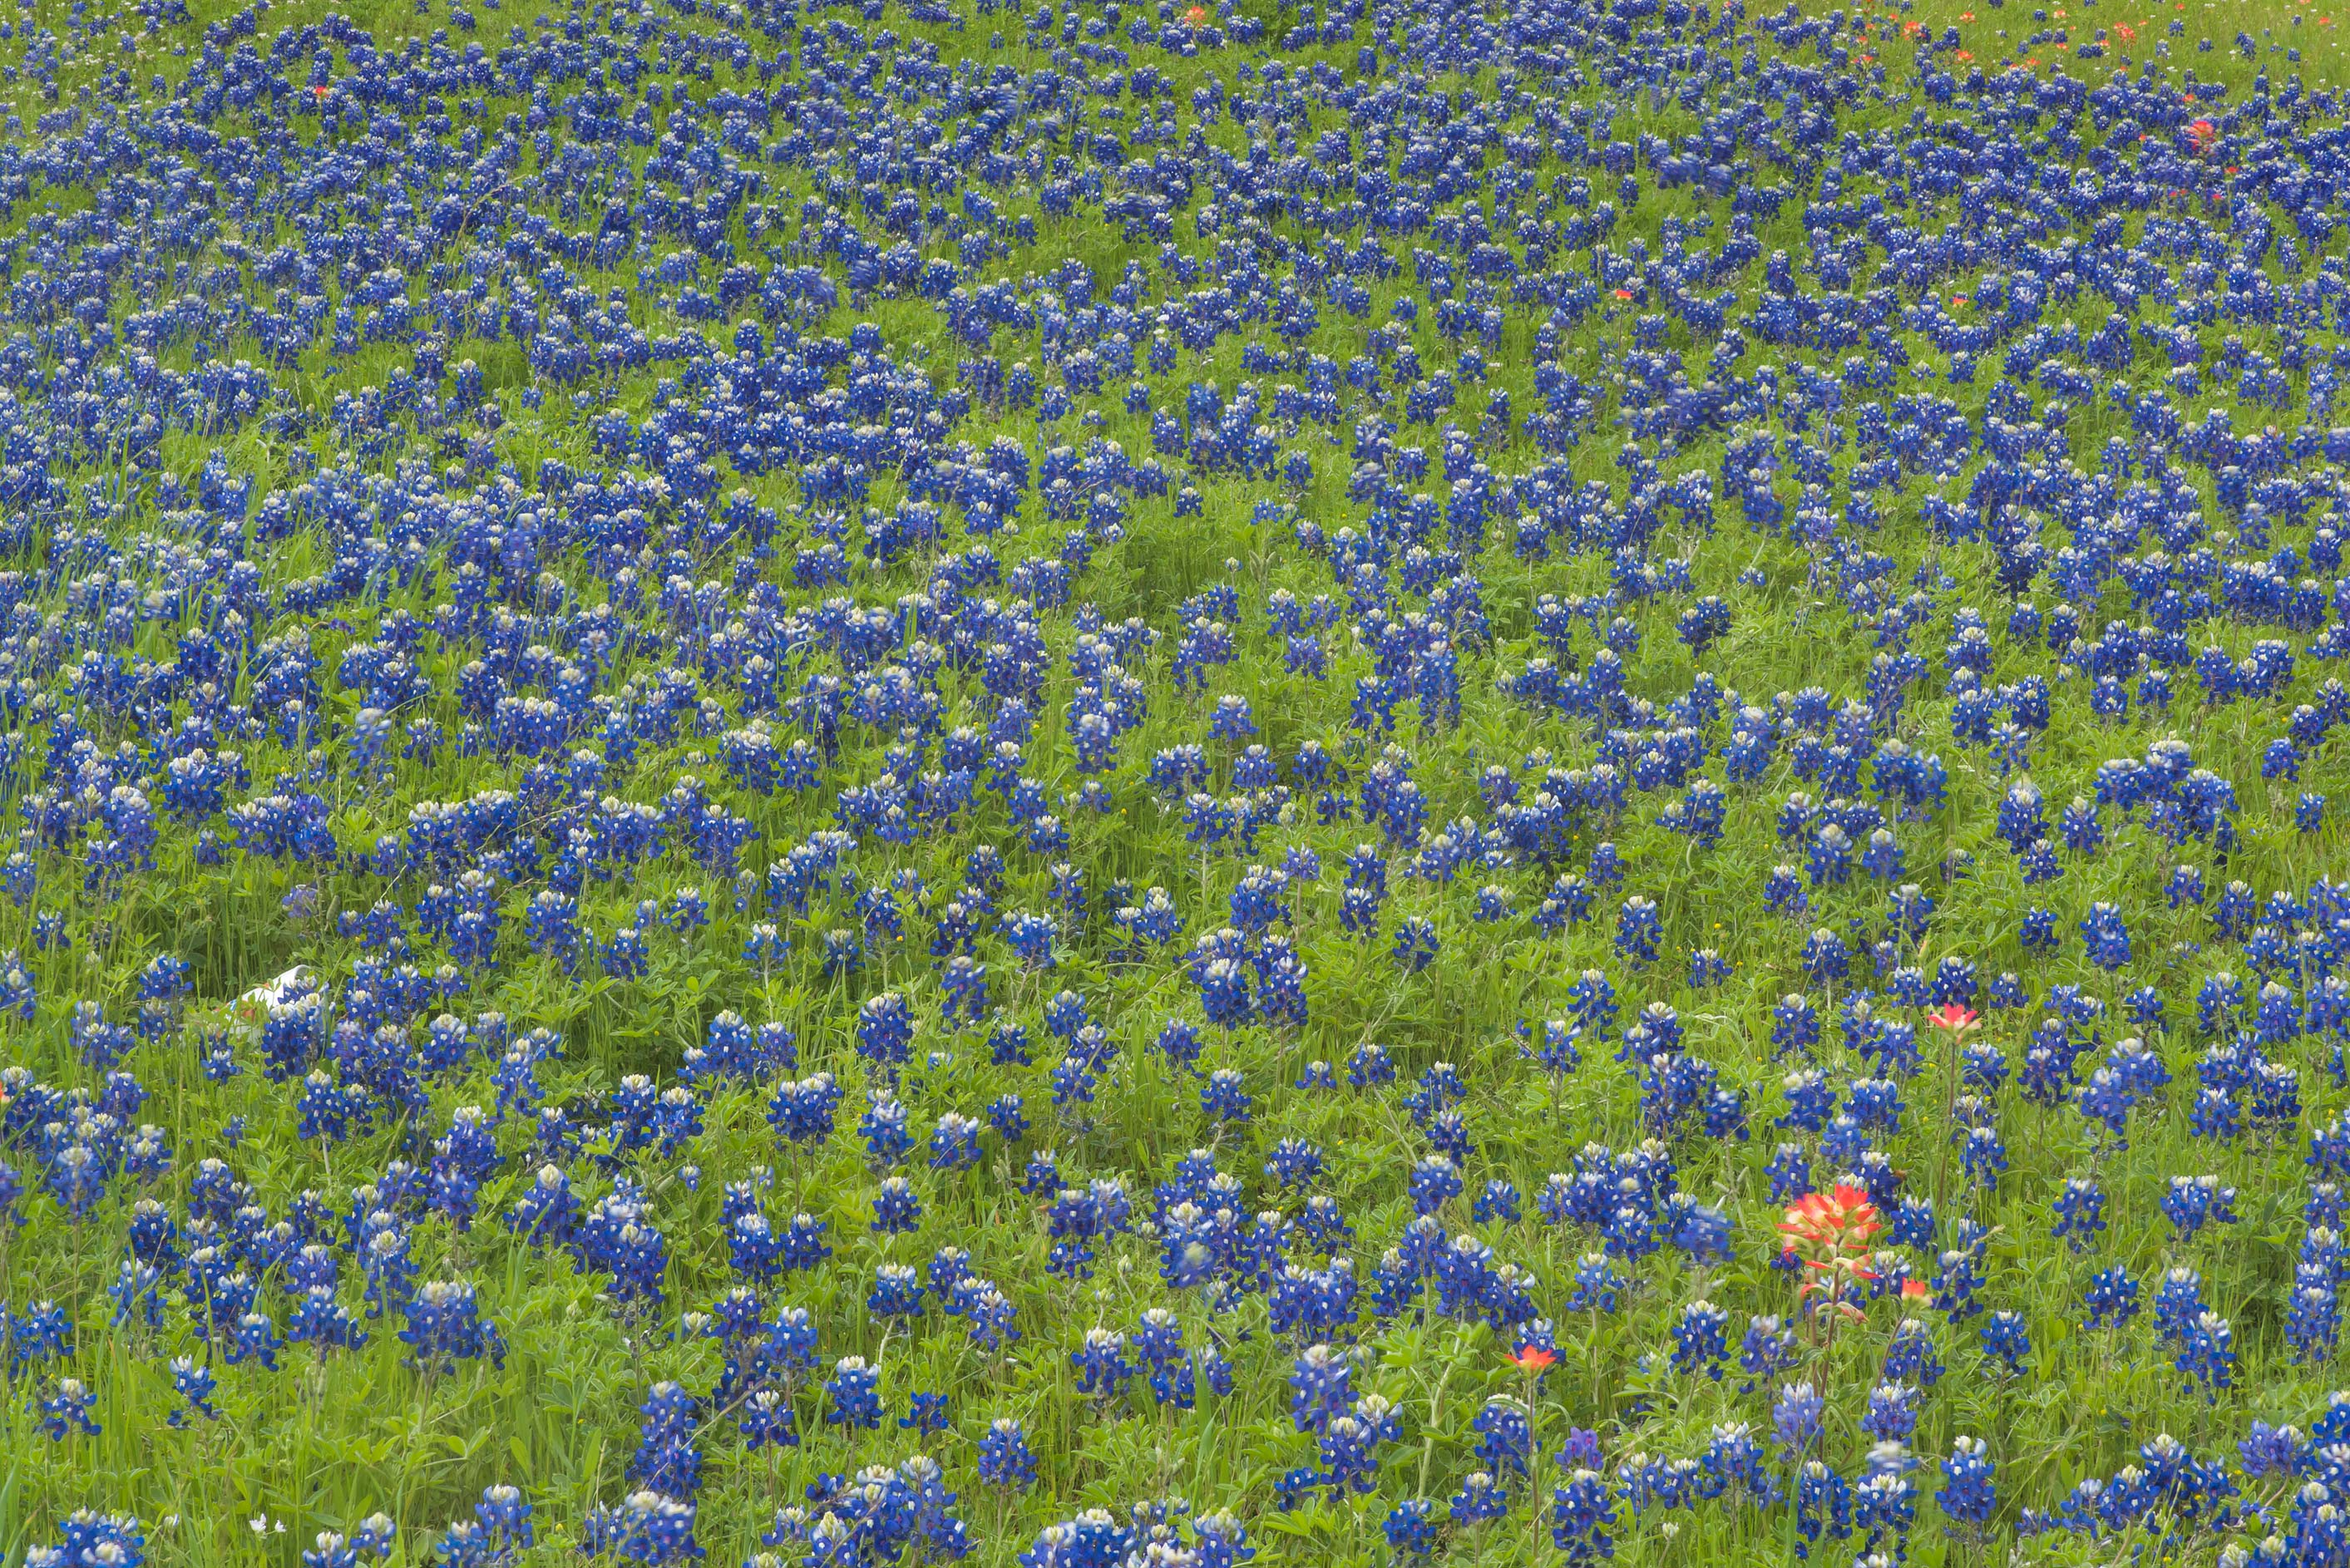 Flowers of bluebonnet (Lupinus) in Old Baylor Park. Independence, Texas